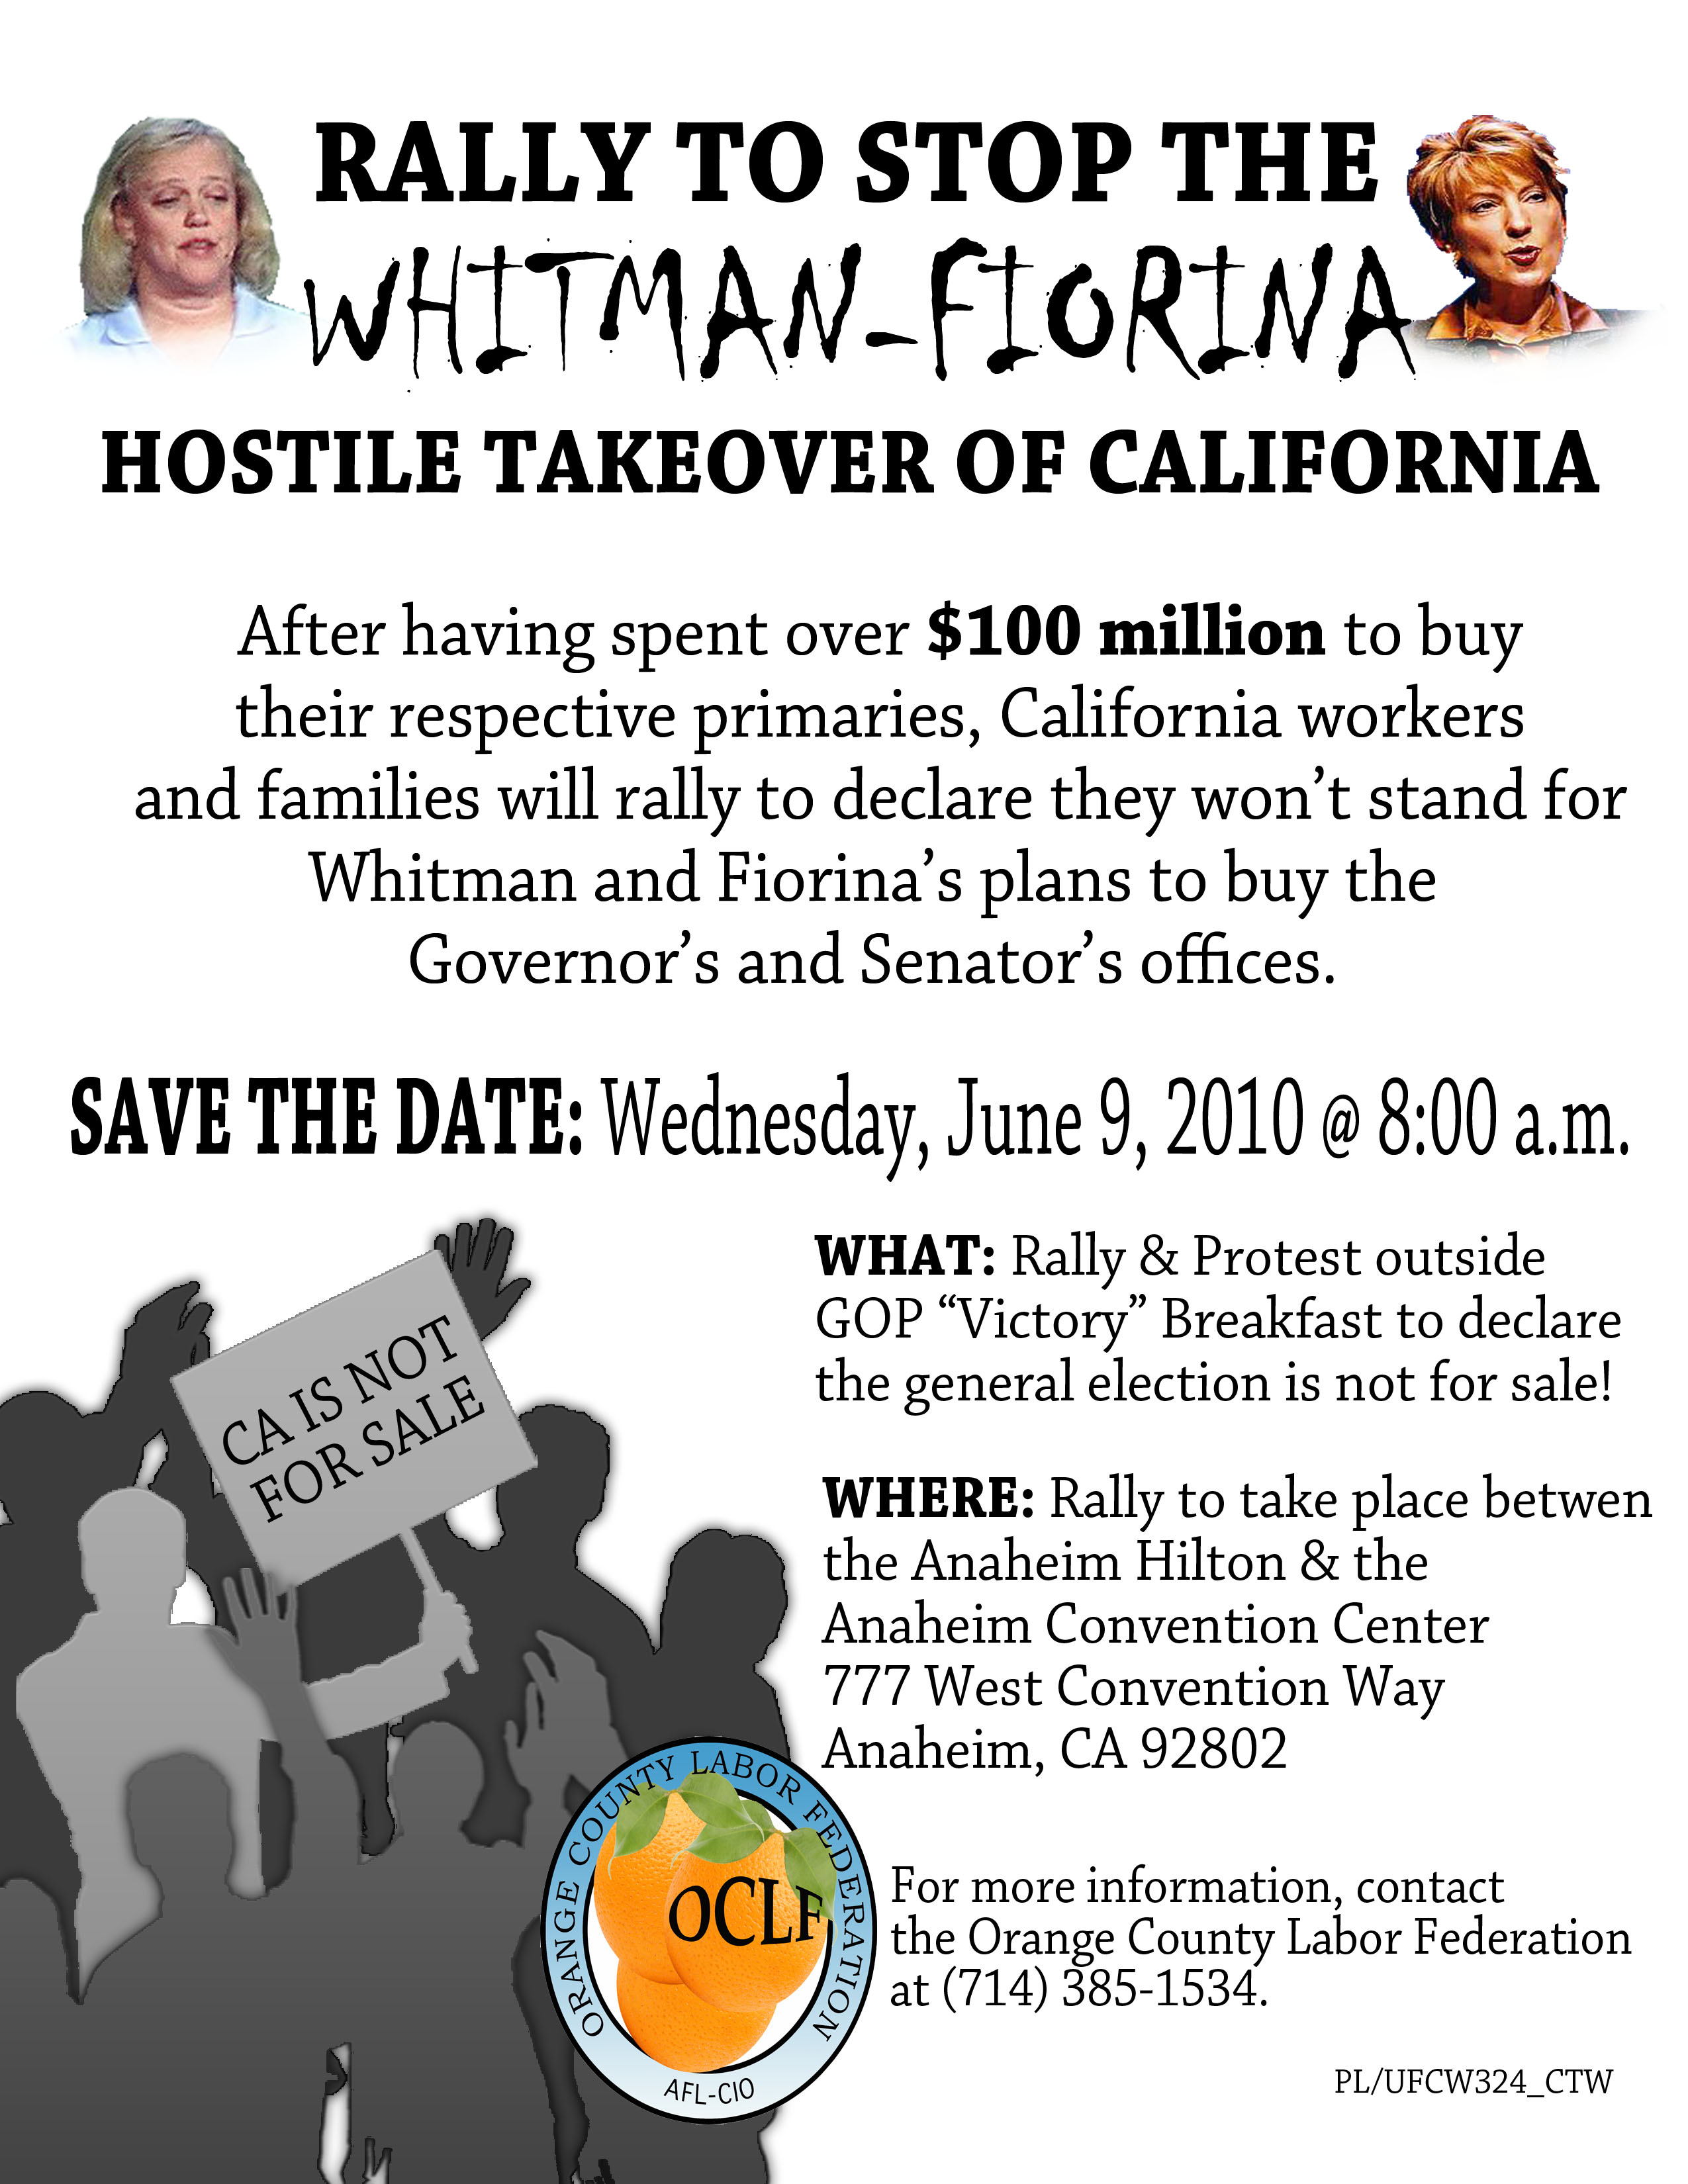 FOR IMMEDIATE RELEASE: JUNE 9, 2010 Rally To Stop the Whitman-Fiorina Hostile Takeover of CA Contacts: Priscilla Luviano (714) 488-3860, Steve Smith (510) 326-4644 Anaheim, CA – As Republican candidates […]